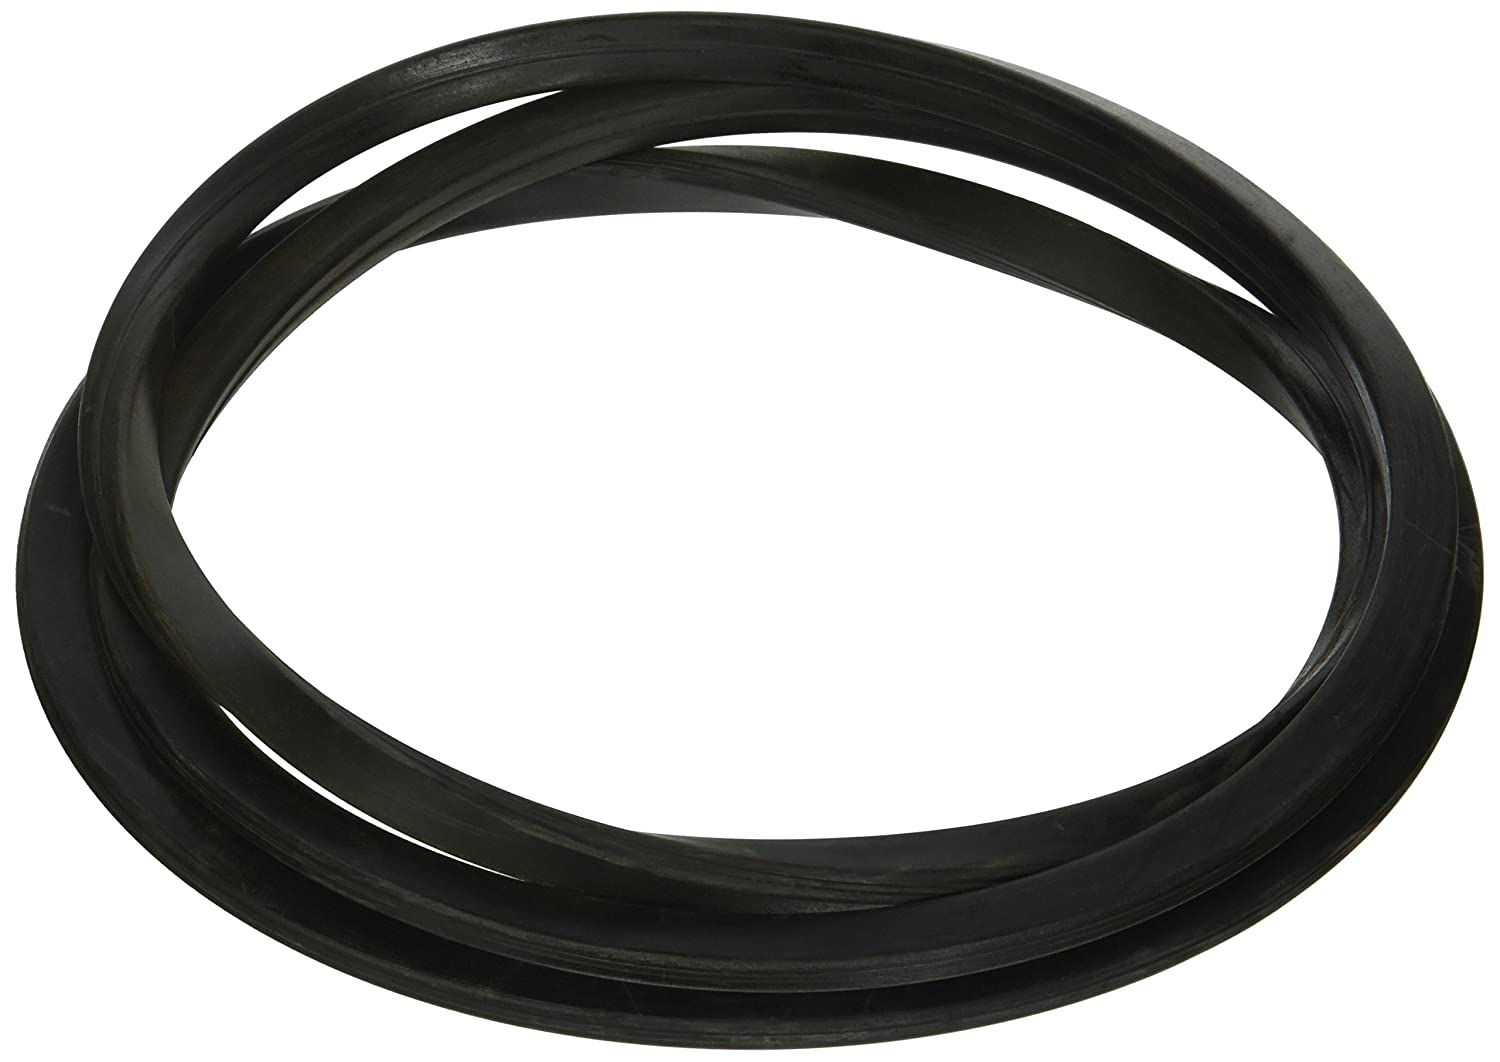 Pentair 195008 O-Ring Tank Replacement FNS Pool and Spa D.E. Filter